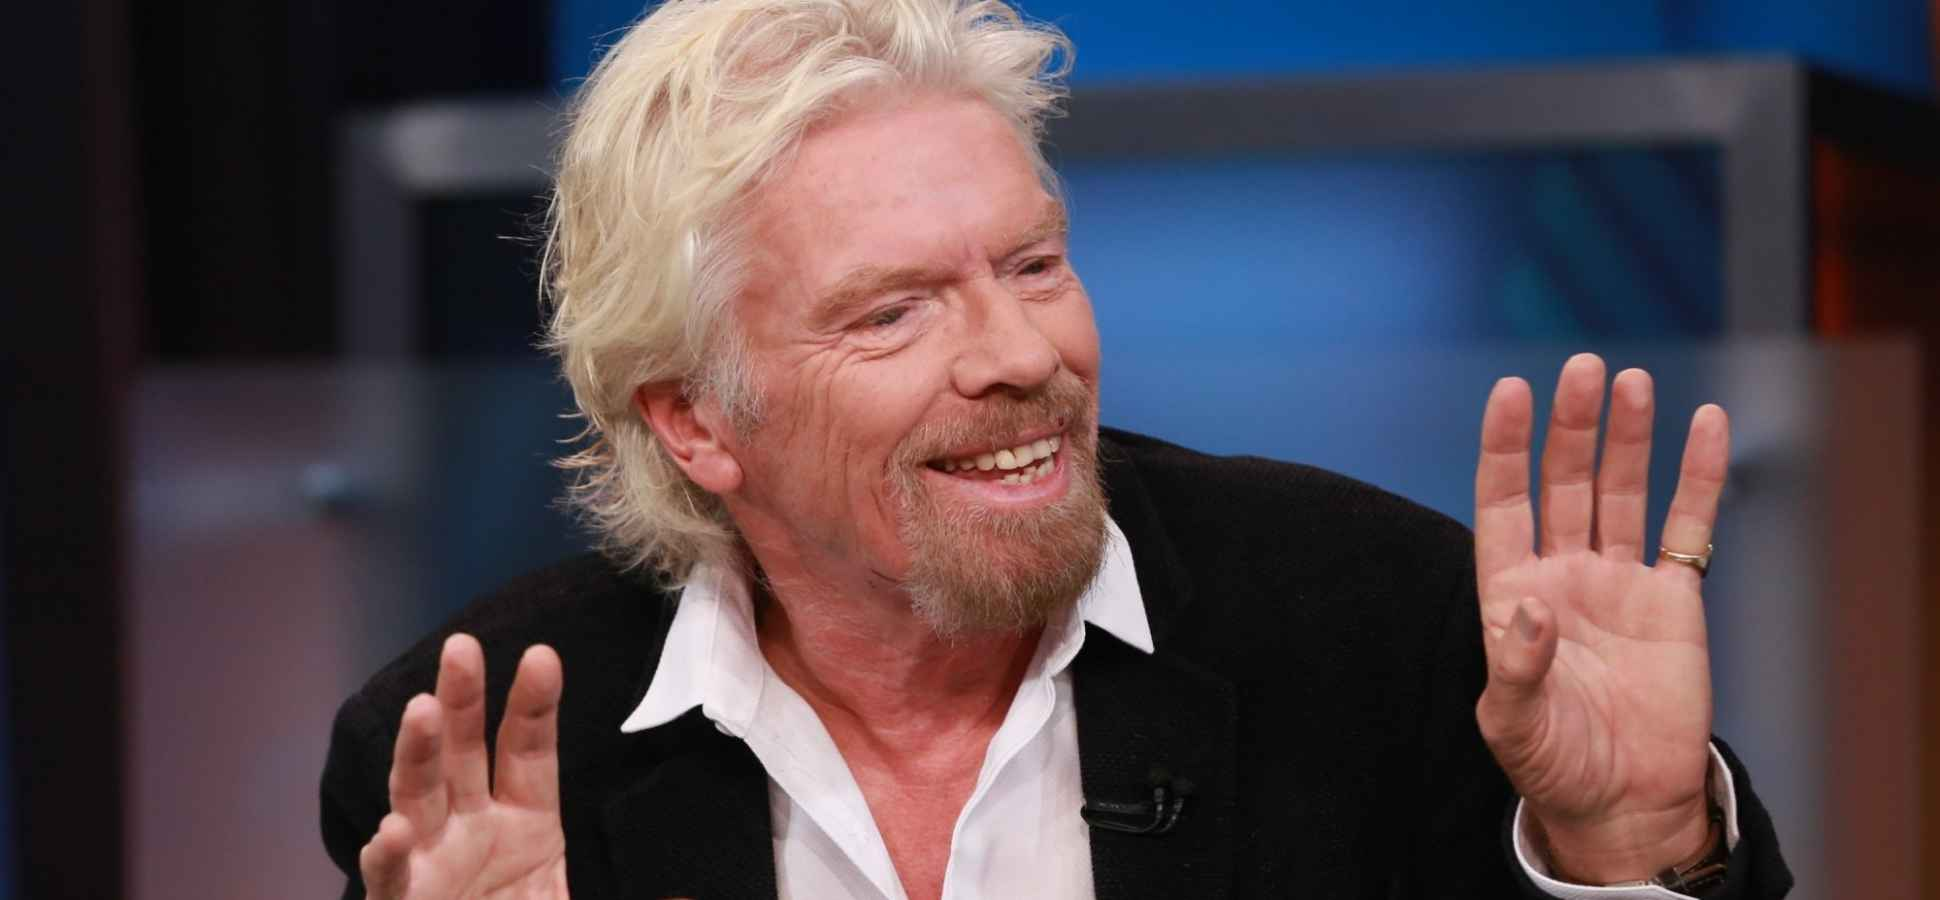 Richard Branson Just Schooled Us All About Being on Time